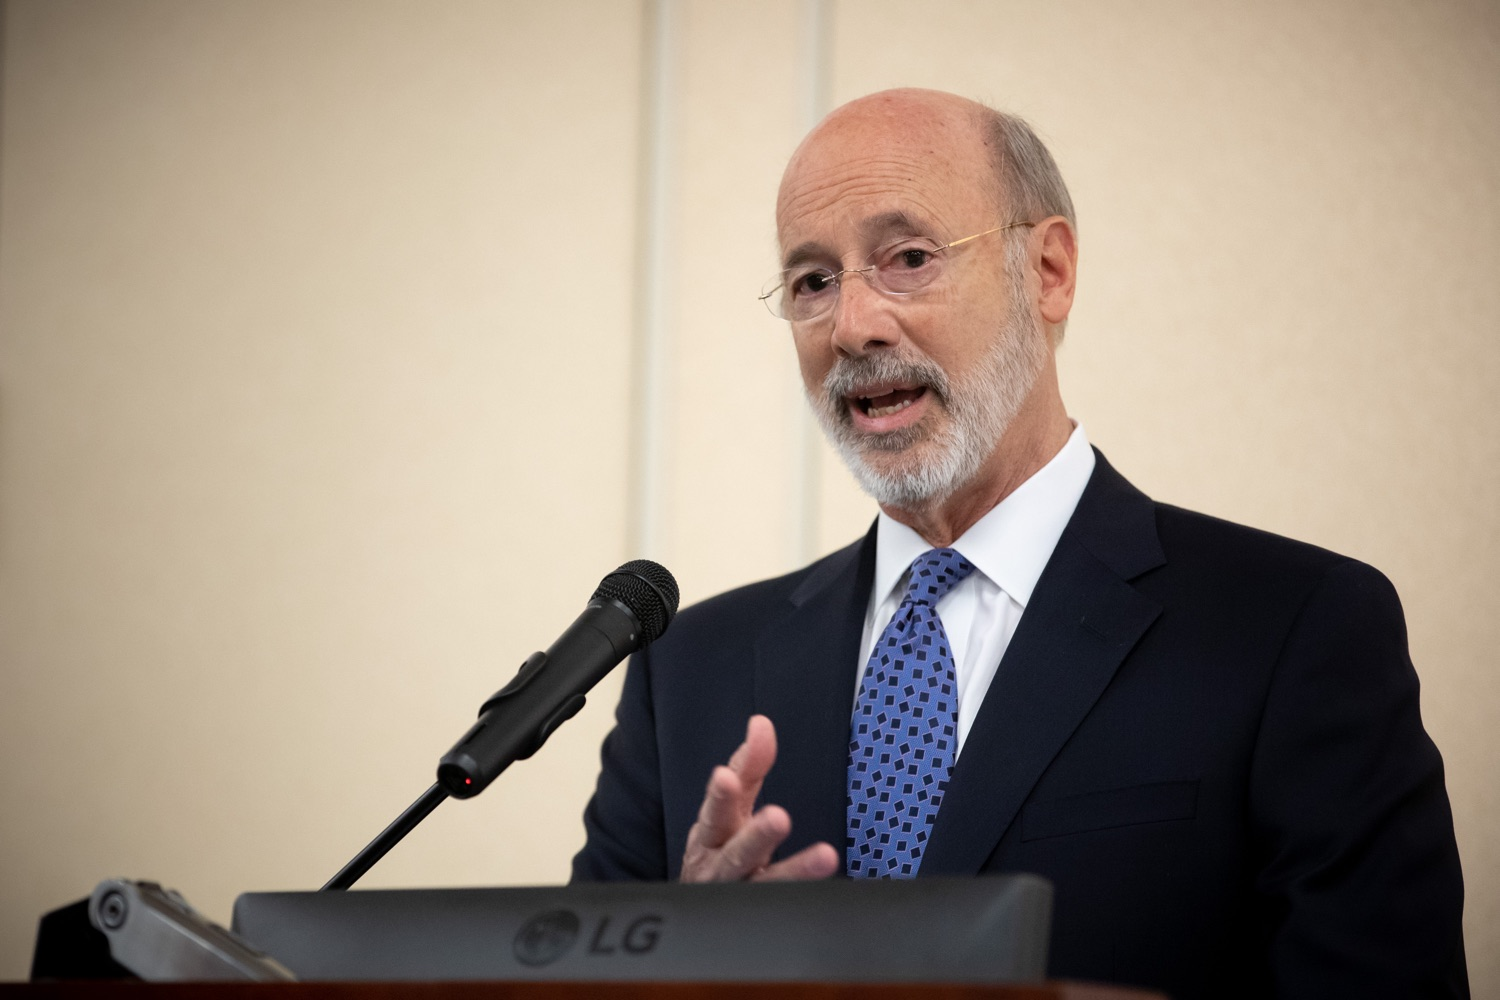 "<a href=""http://filesource.abacast.com/commonwealthofpa/photo/17598_gov_charter_schools_dz_002.jpg"" target=""_blank"">⇣ Download Photo<br></a>Pennsylvania Governor Tom Wolf speaks about charter school reform at a meeting of the Pennsylvania Association of School Administrators.  Governor Tom Wolfs commonsense plan to improve the educational quality of charter schools and control rising costs will save nearly $280 million a year, the governor told the Pennsylvania Association of School Administrators today. The governor has a three-part plan to fix Pennsylvanias charter school law which is regarded as one of the worst in the nation.  - Harrisburg, PA. Friday, November 15, 2019."